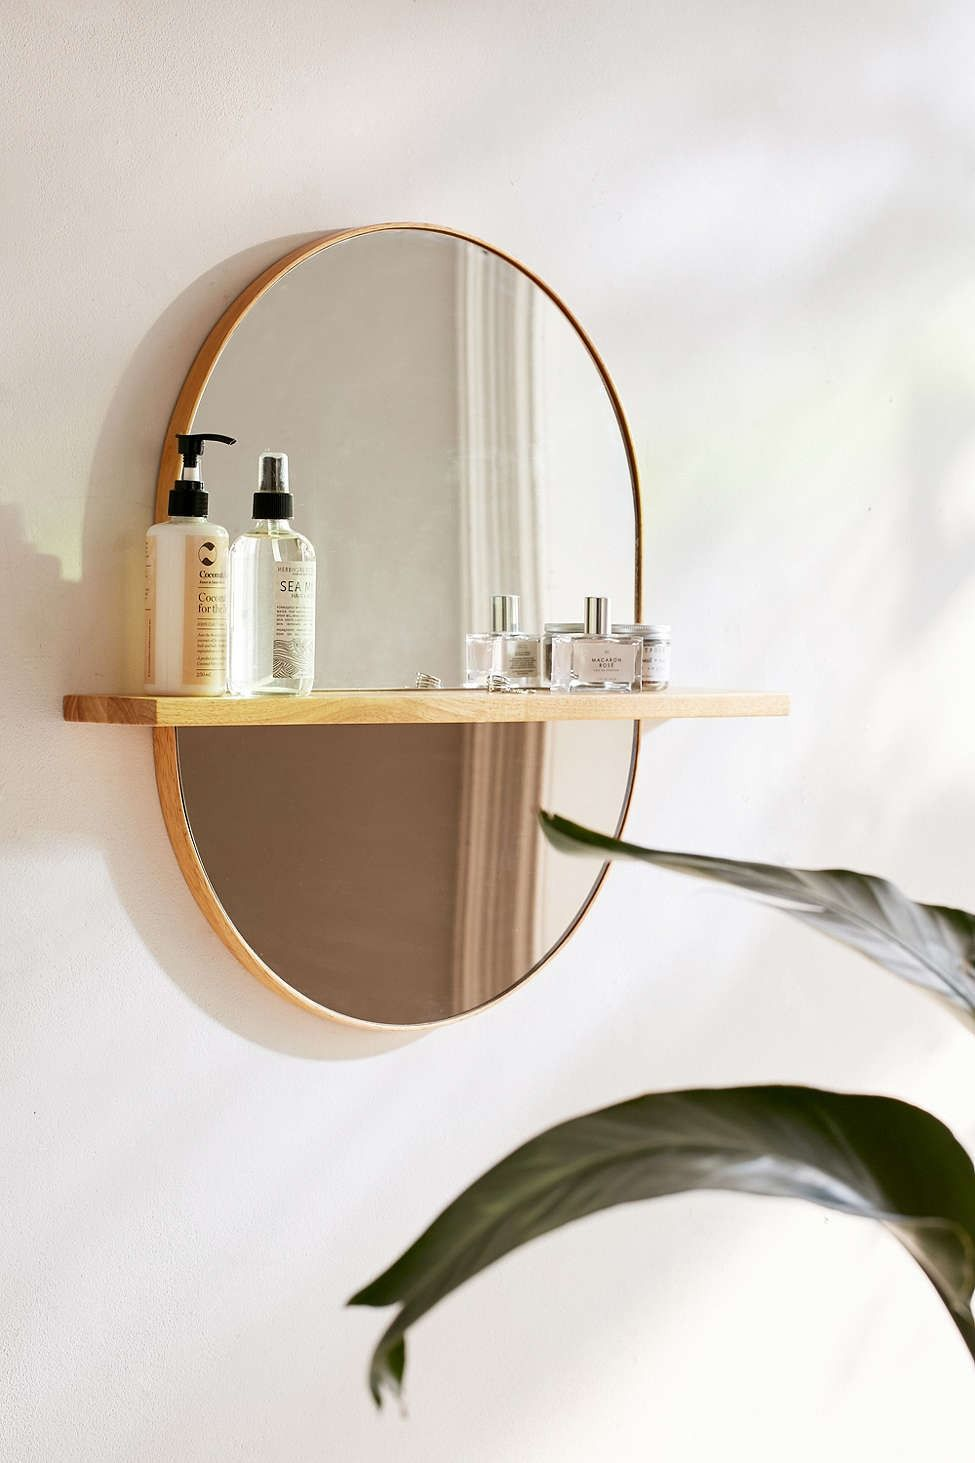 Ivette Rounded Mirror Shelf Mirror With Shelf Shower Curtain Decor Round Mirrors